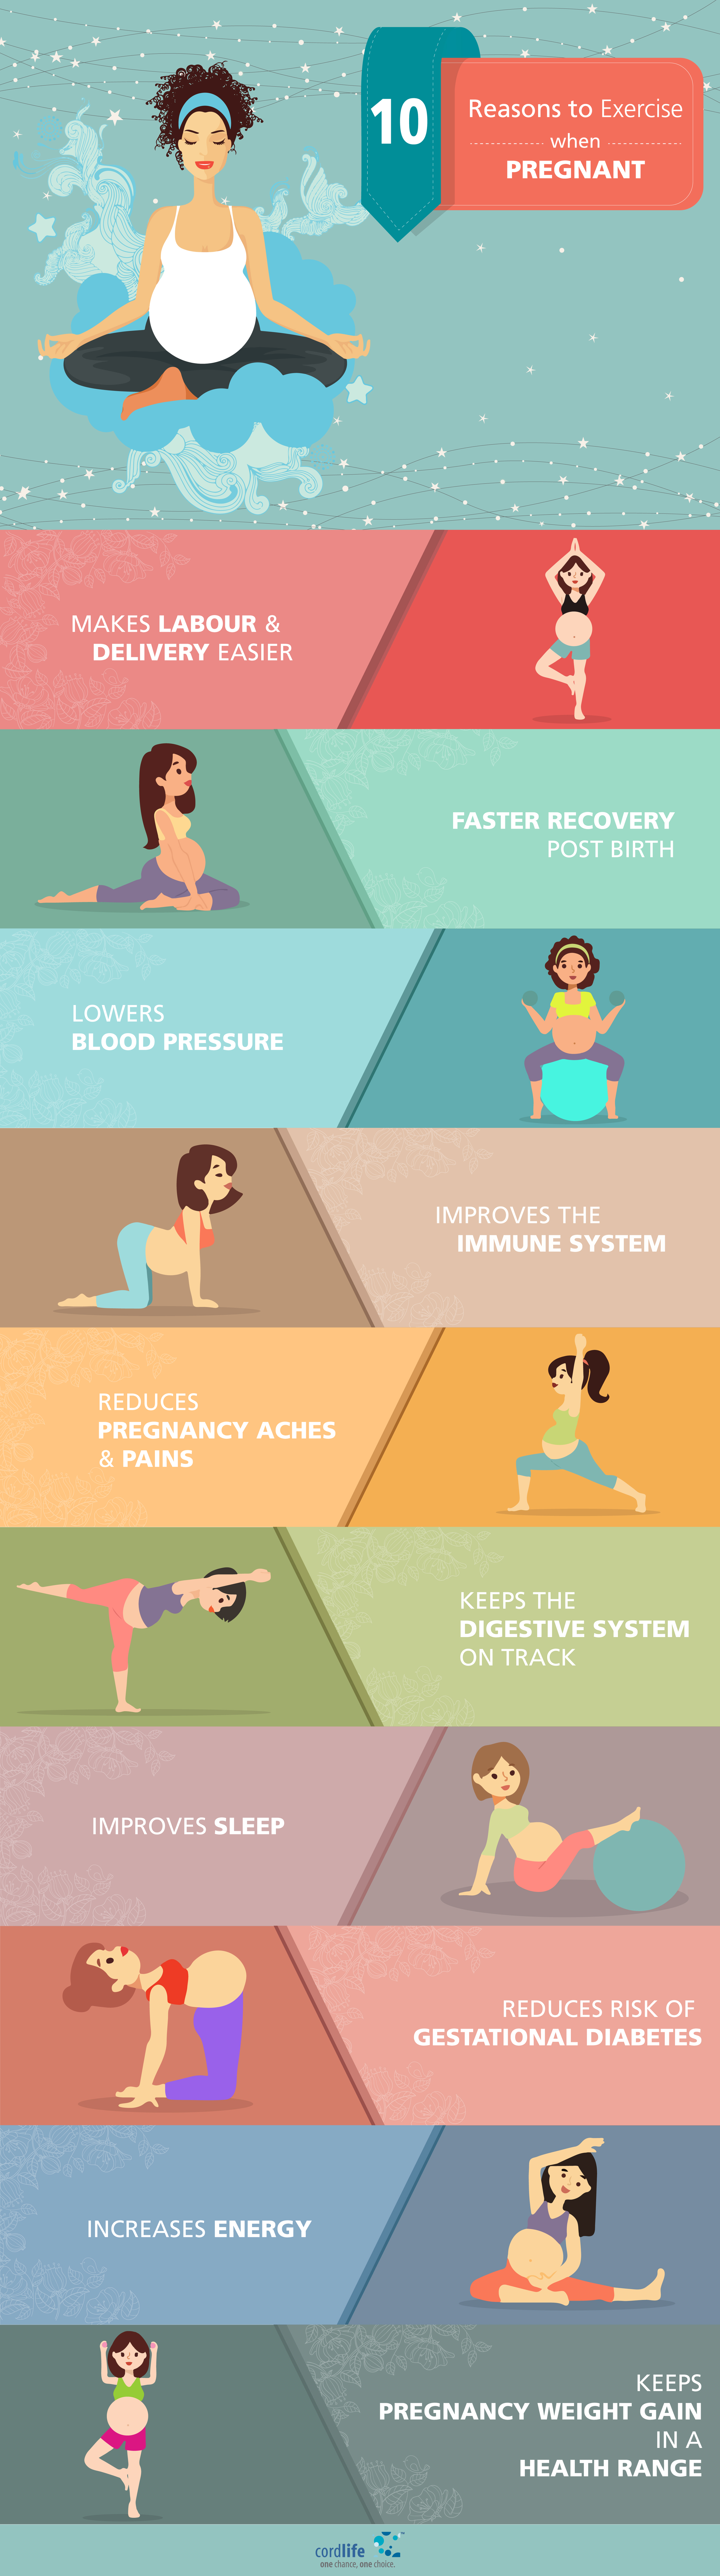 10 reasons to exercise when pregnant